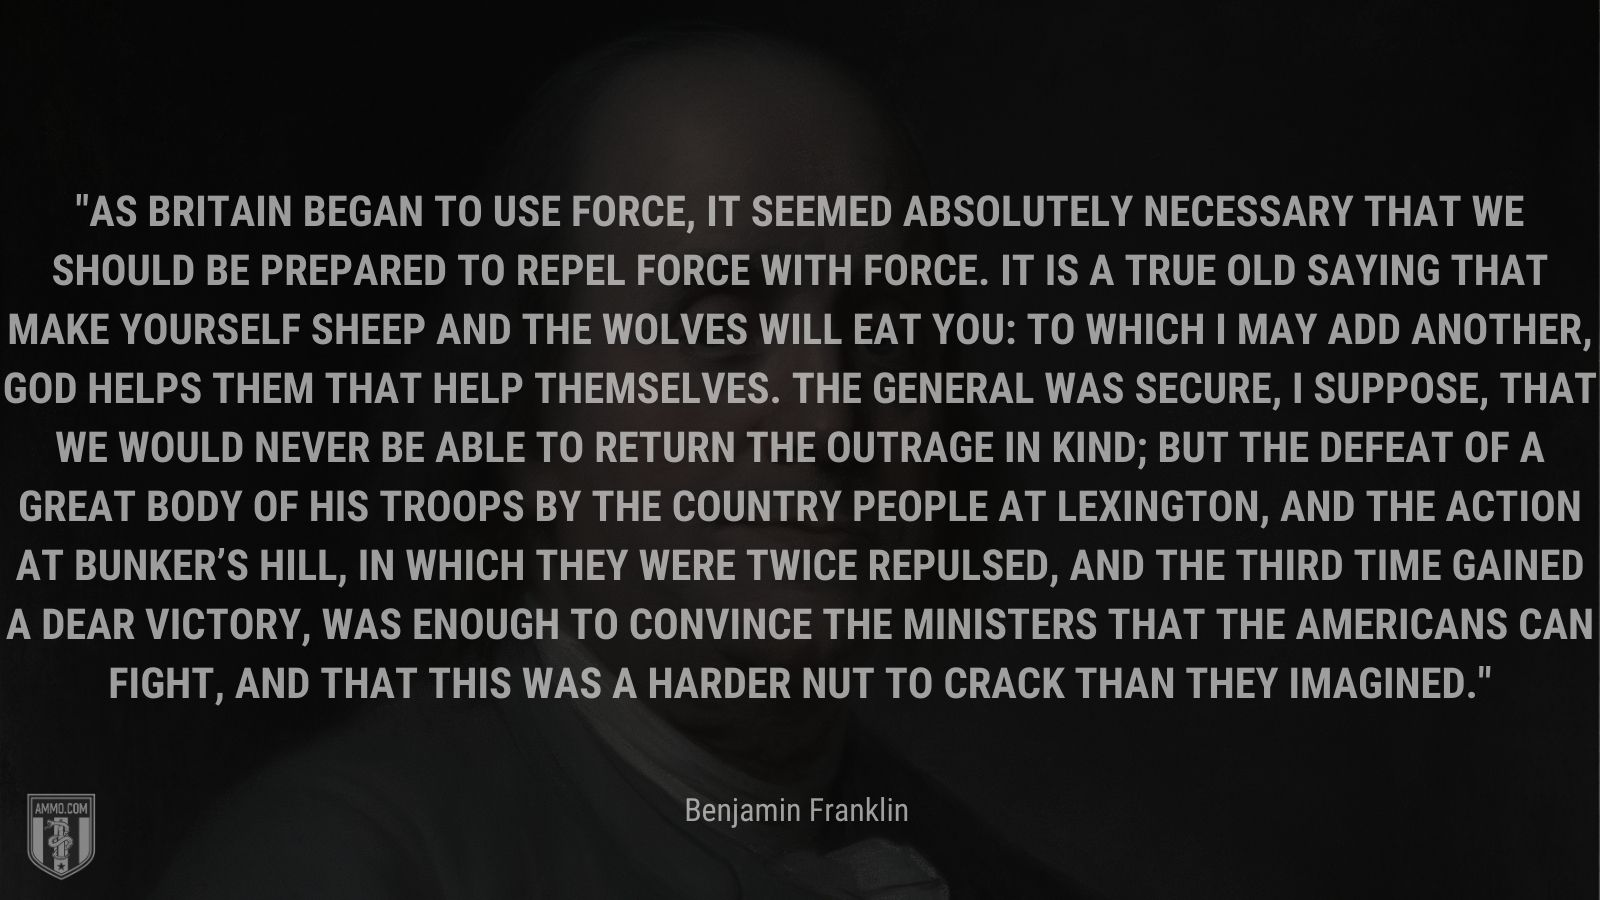 """""""As Britain began to use force, it seemed absolutely necessary that we should be prepared to repel force with force. It is a true old saying that make yourself sheep and the wolves will eat you: to which I may add another, God helps them that help themselves. The General was secure, I suppose, that we would never be able to return the outrage in kind; but the defeat of a great body of his troops by the country people at Lexington, and the action at Bunker's Hill, in which they were twice repulsed, and the third time gained a dear victory, was enough to convince the ministers that the Americans can fight, and that this was a harder nut to crack than they imagined."""" - Benjamin Franklin"""